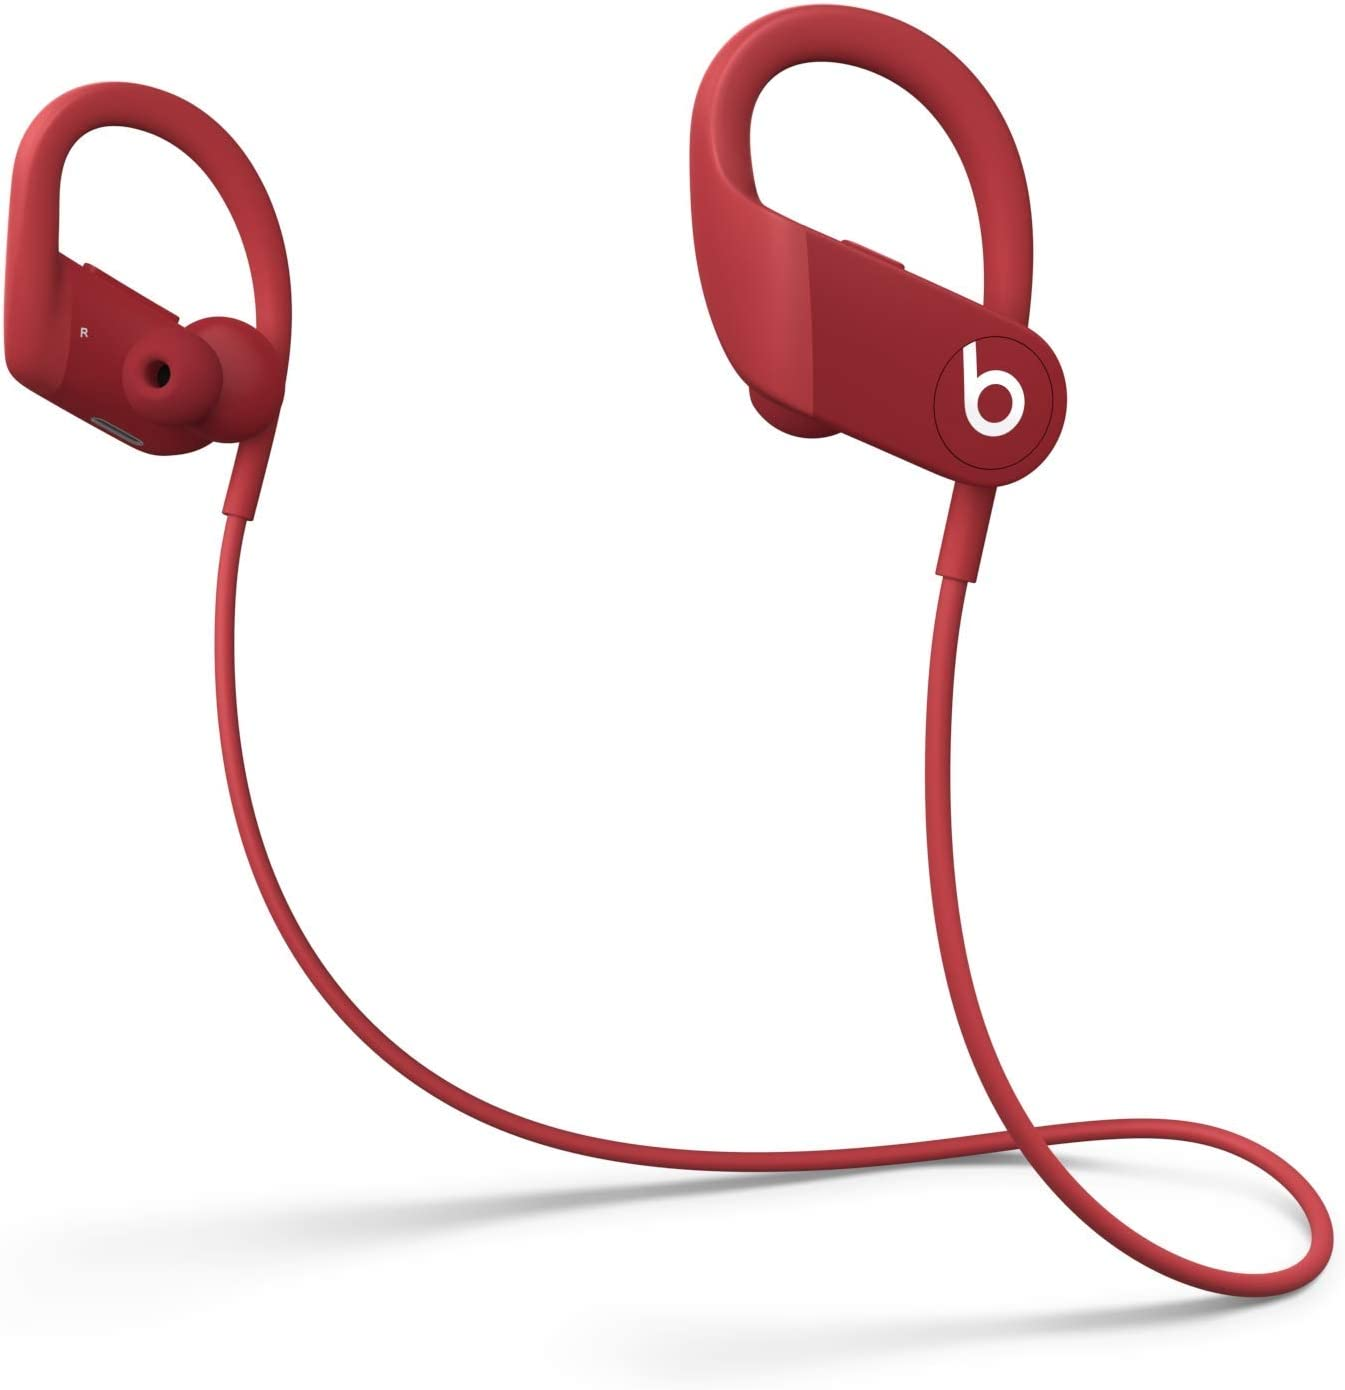 Beats by Dre Powerbeats High-Performance Wireless Earphones - Red - MWNX2LL/A (Renewed)